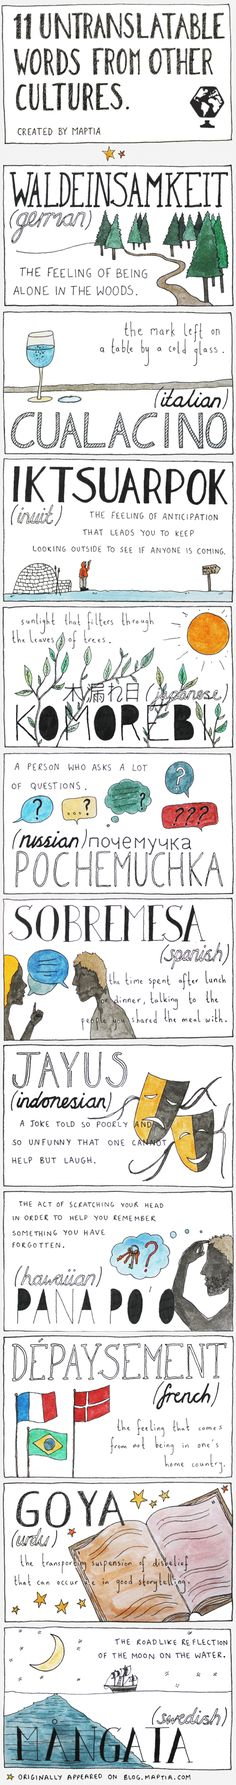 11 Untranslatable Words From Other Cultures | Visual.ly http://visual.ly/11-untranslatable-words-other-cultures?sthash.1Sk4mmyN.tupo